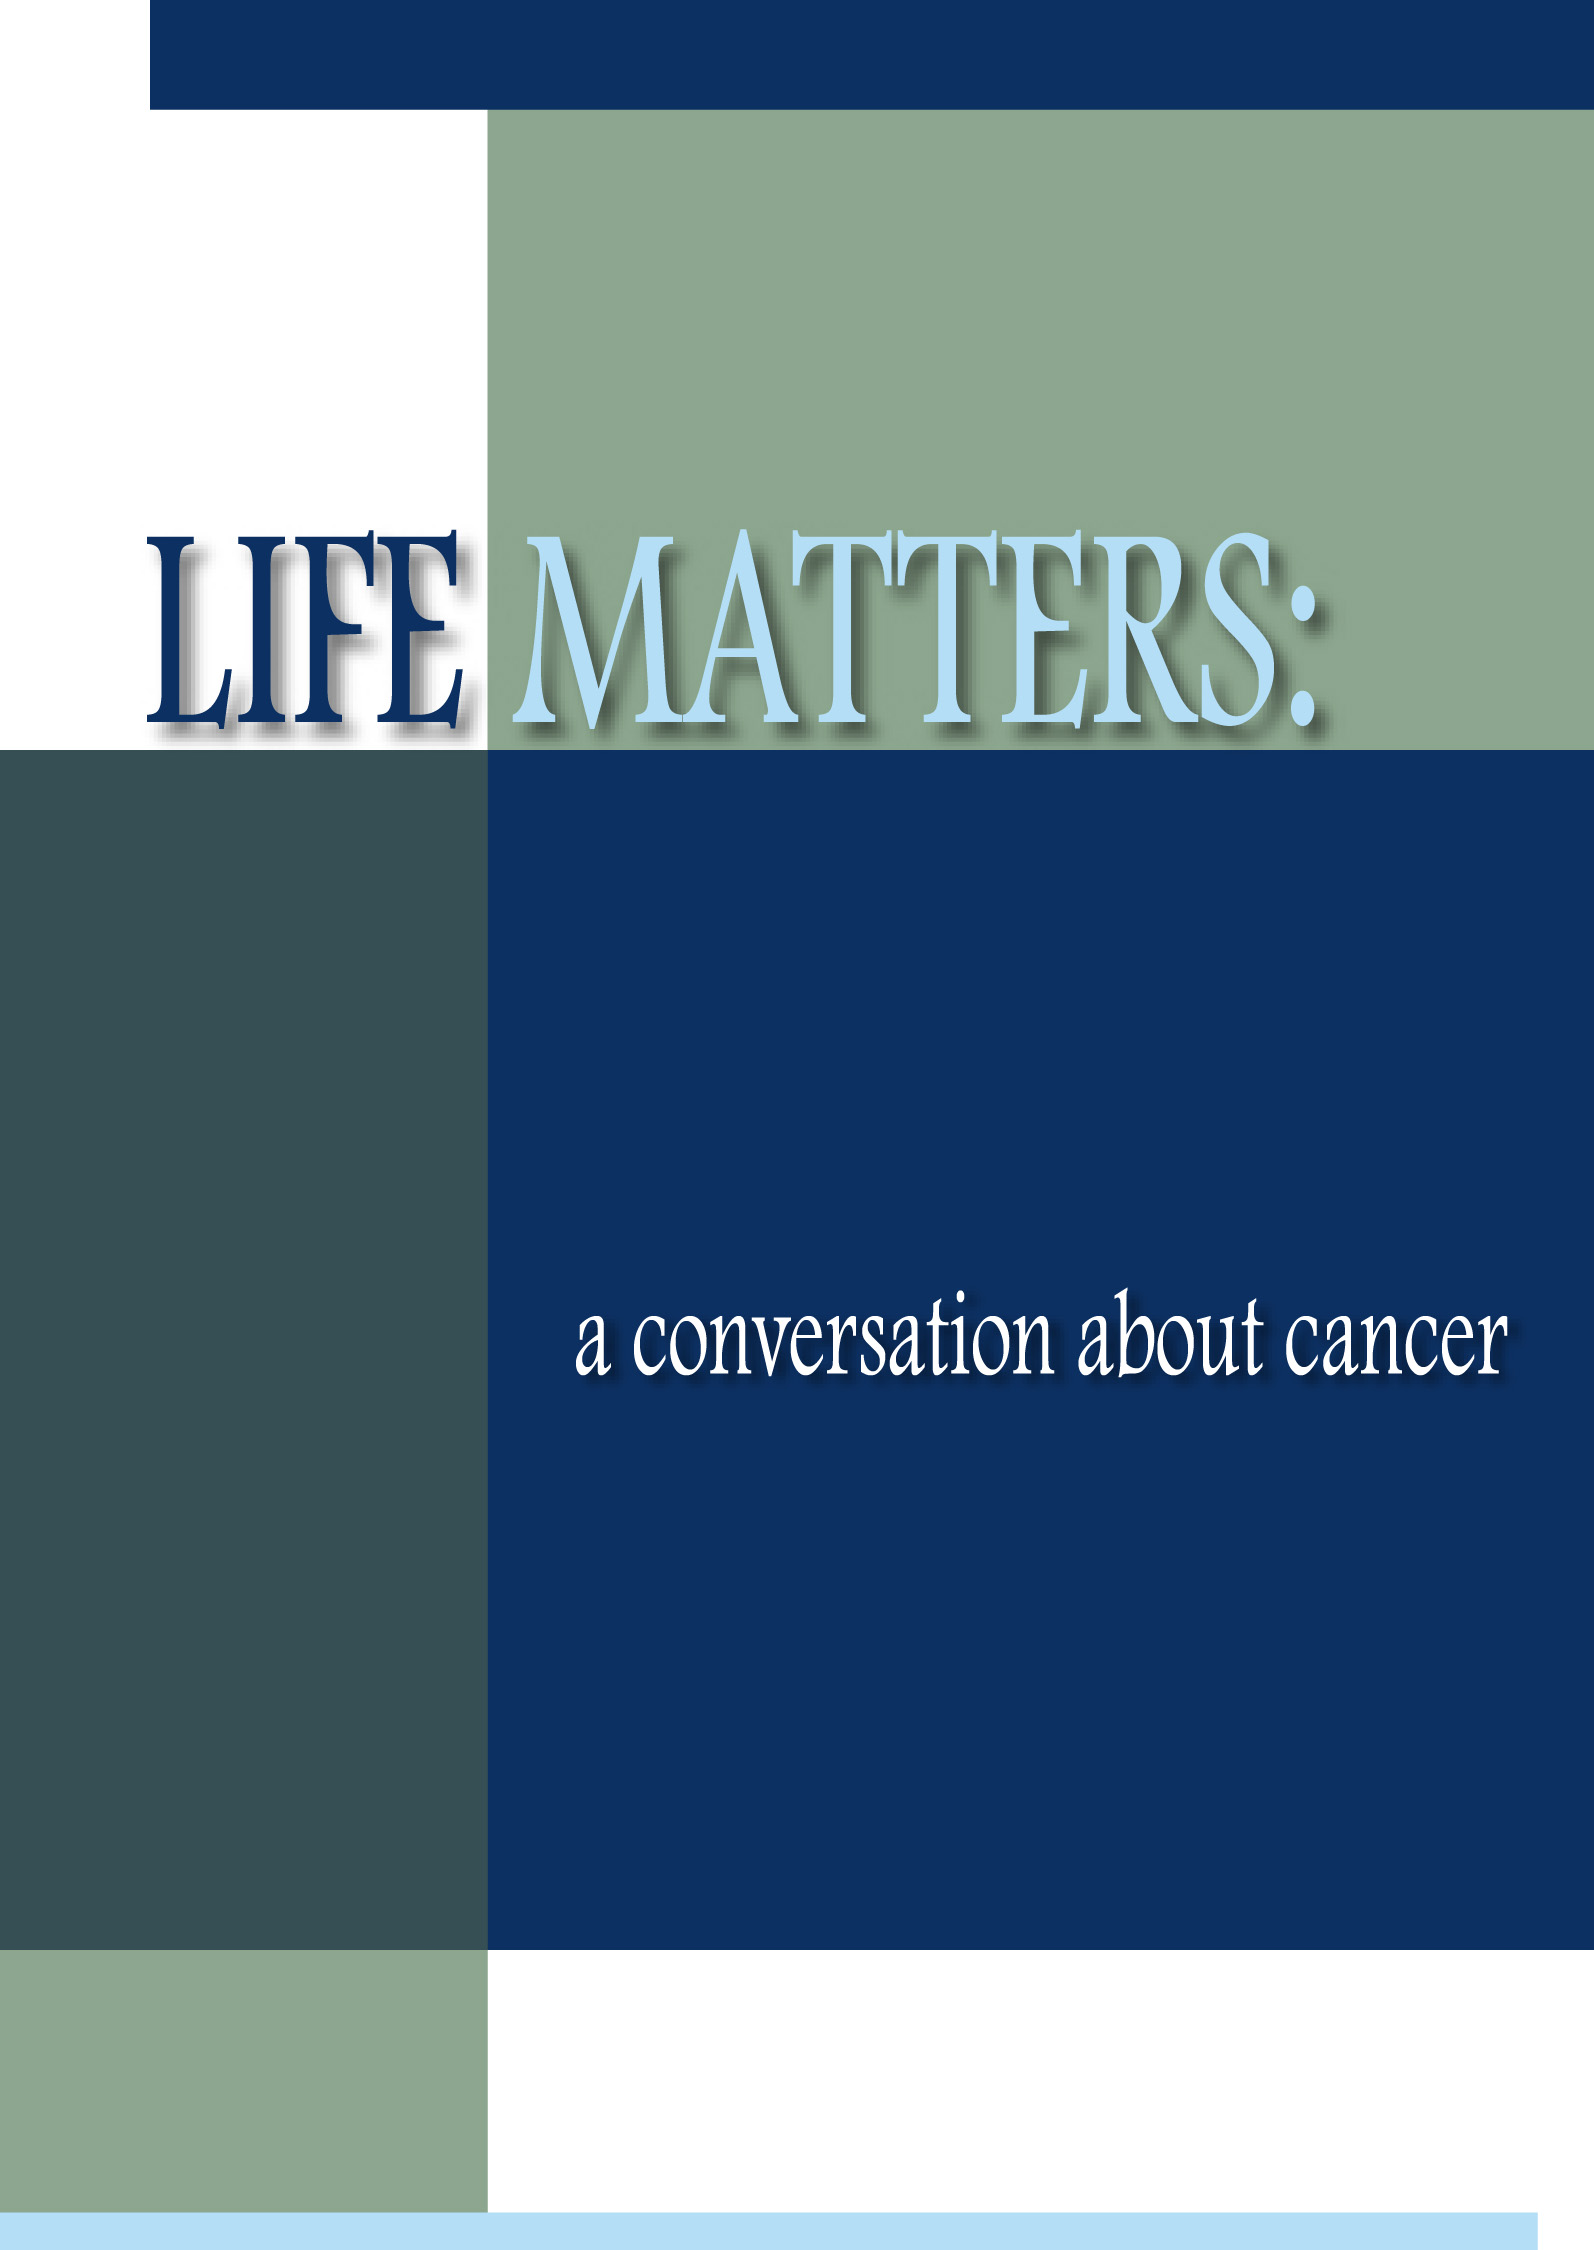 Life Matters: A Conversation About Cancer